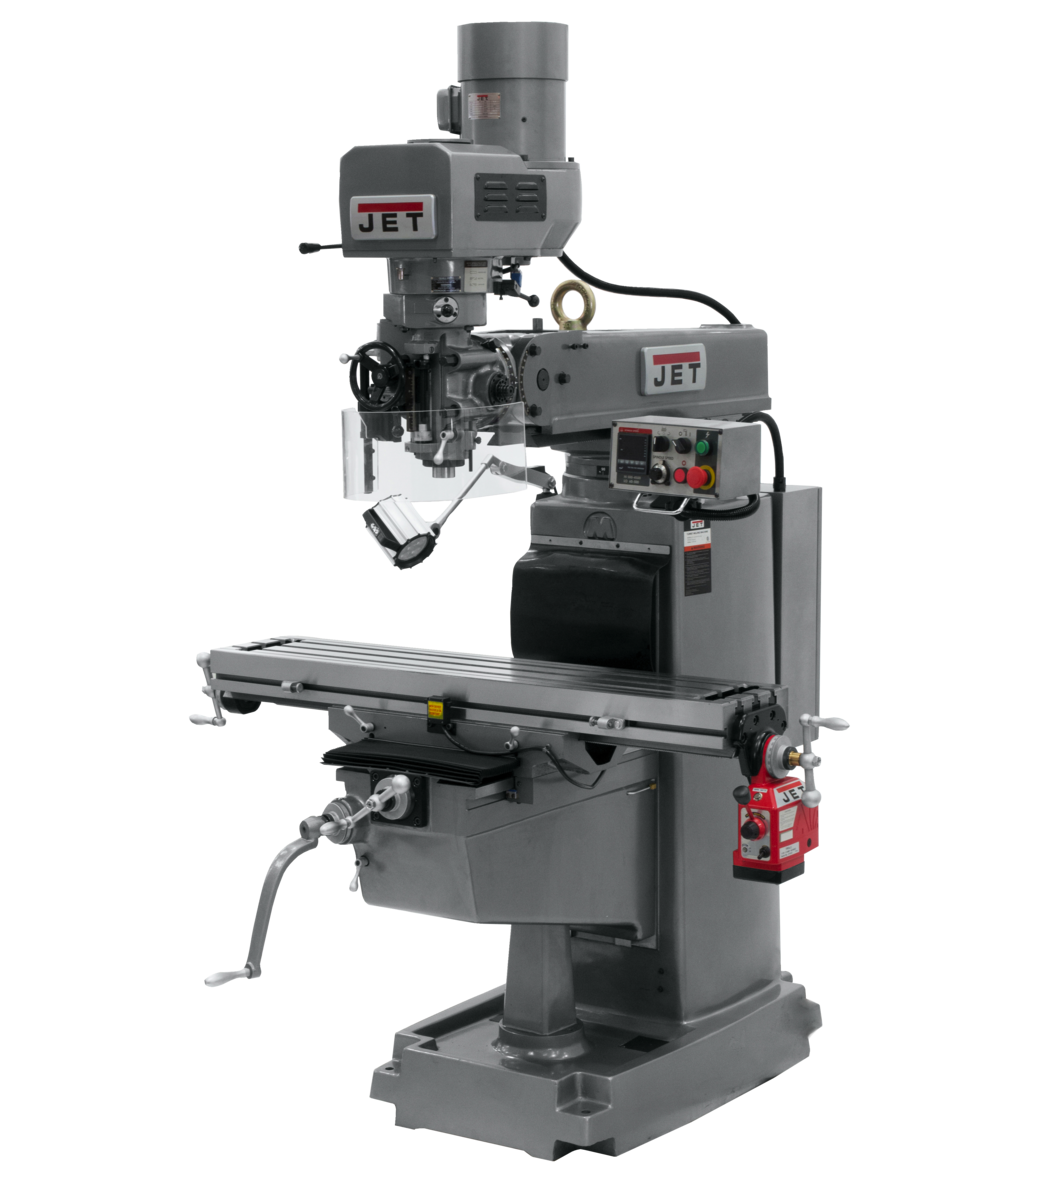 JTM-1050EVS2/230 Mill With X-Axis Powerfeed and Air Powered Draw Bar